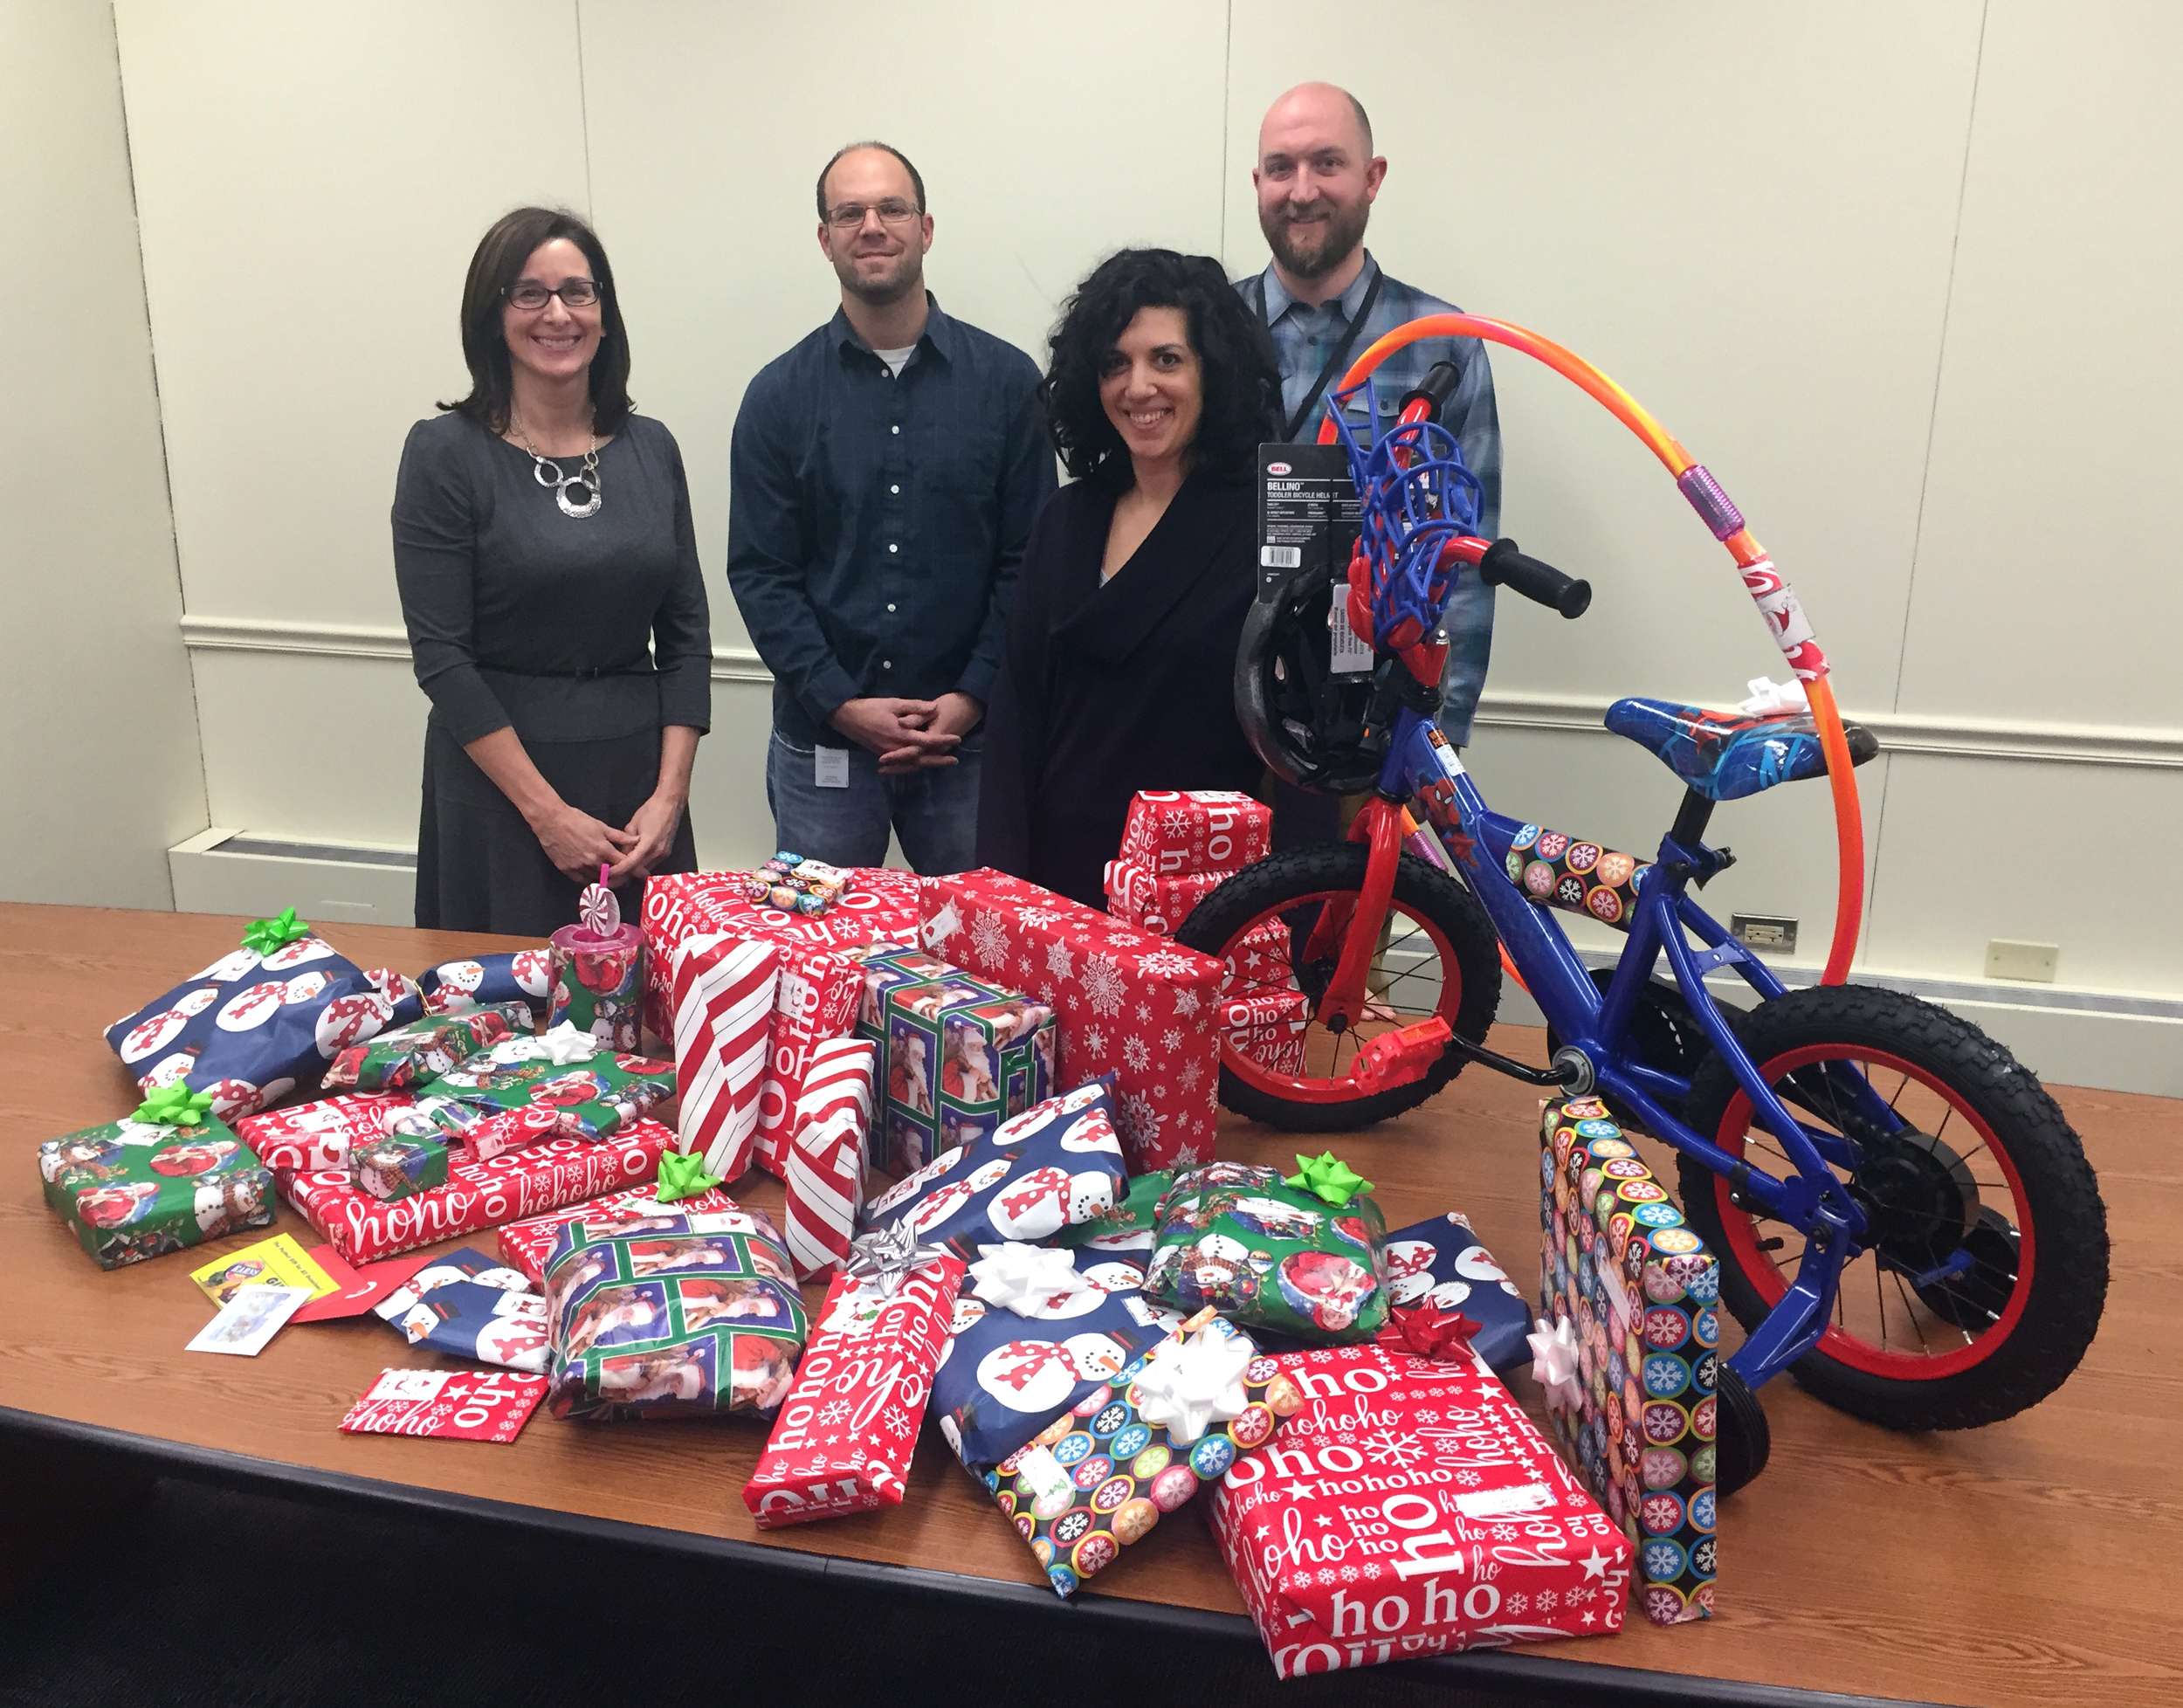 ^ GeoDecisions employees   Andrea Marsters, Bradley Pomerantz, Abigail Ketchum, and Christopher Bley wrapped gifts for the 2015 Pennsylvania Holiday Wish program.